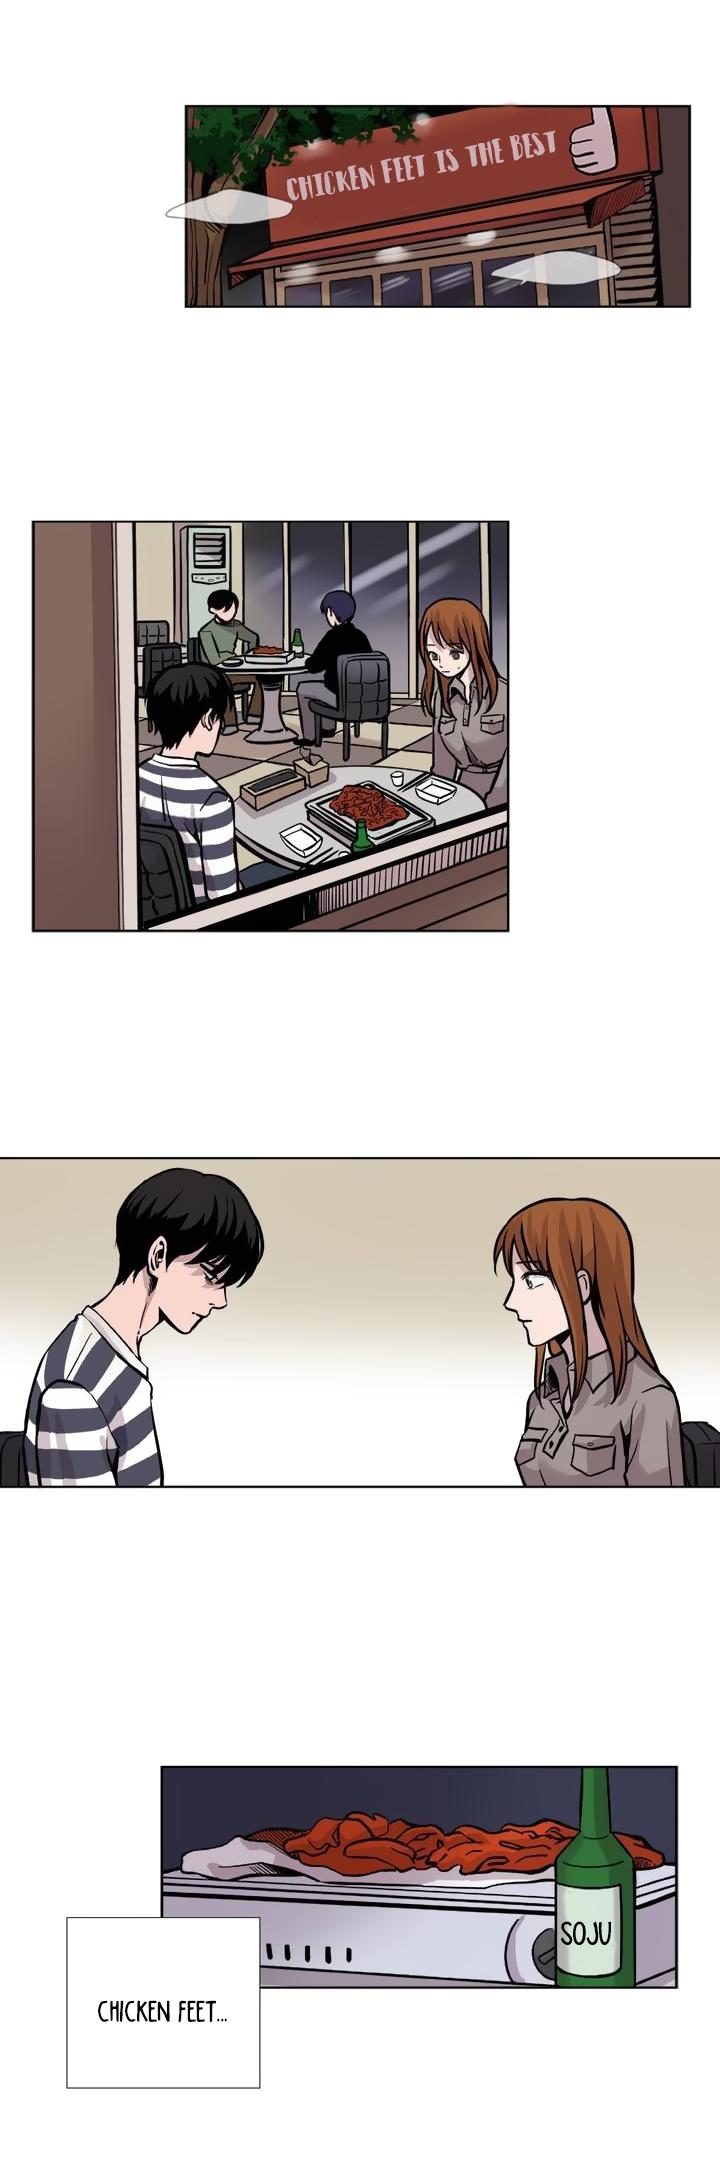 Their Circumstances (Sria) - Chapter 3